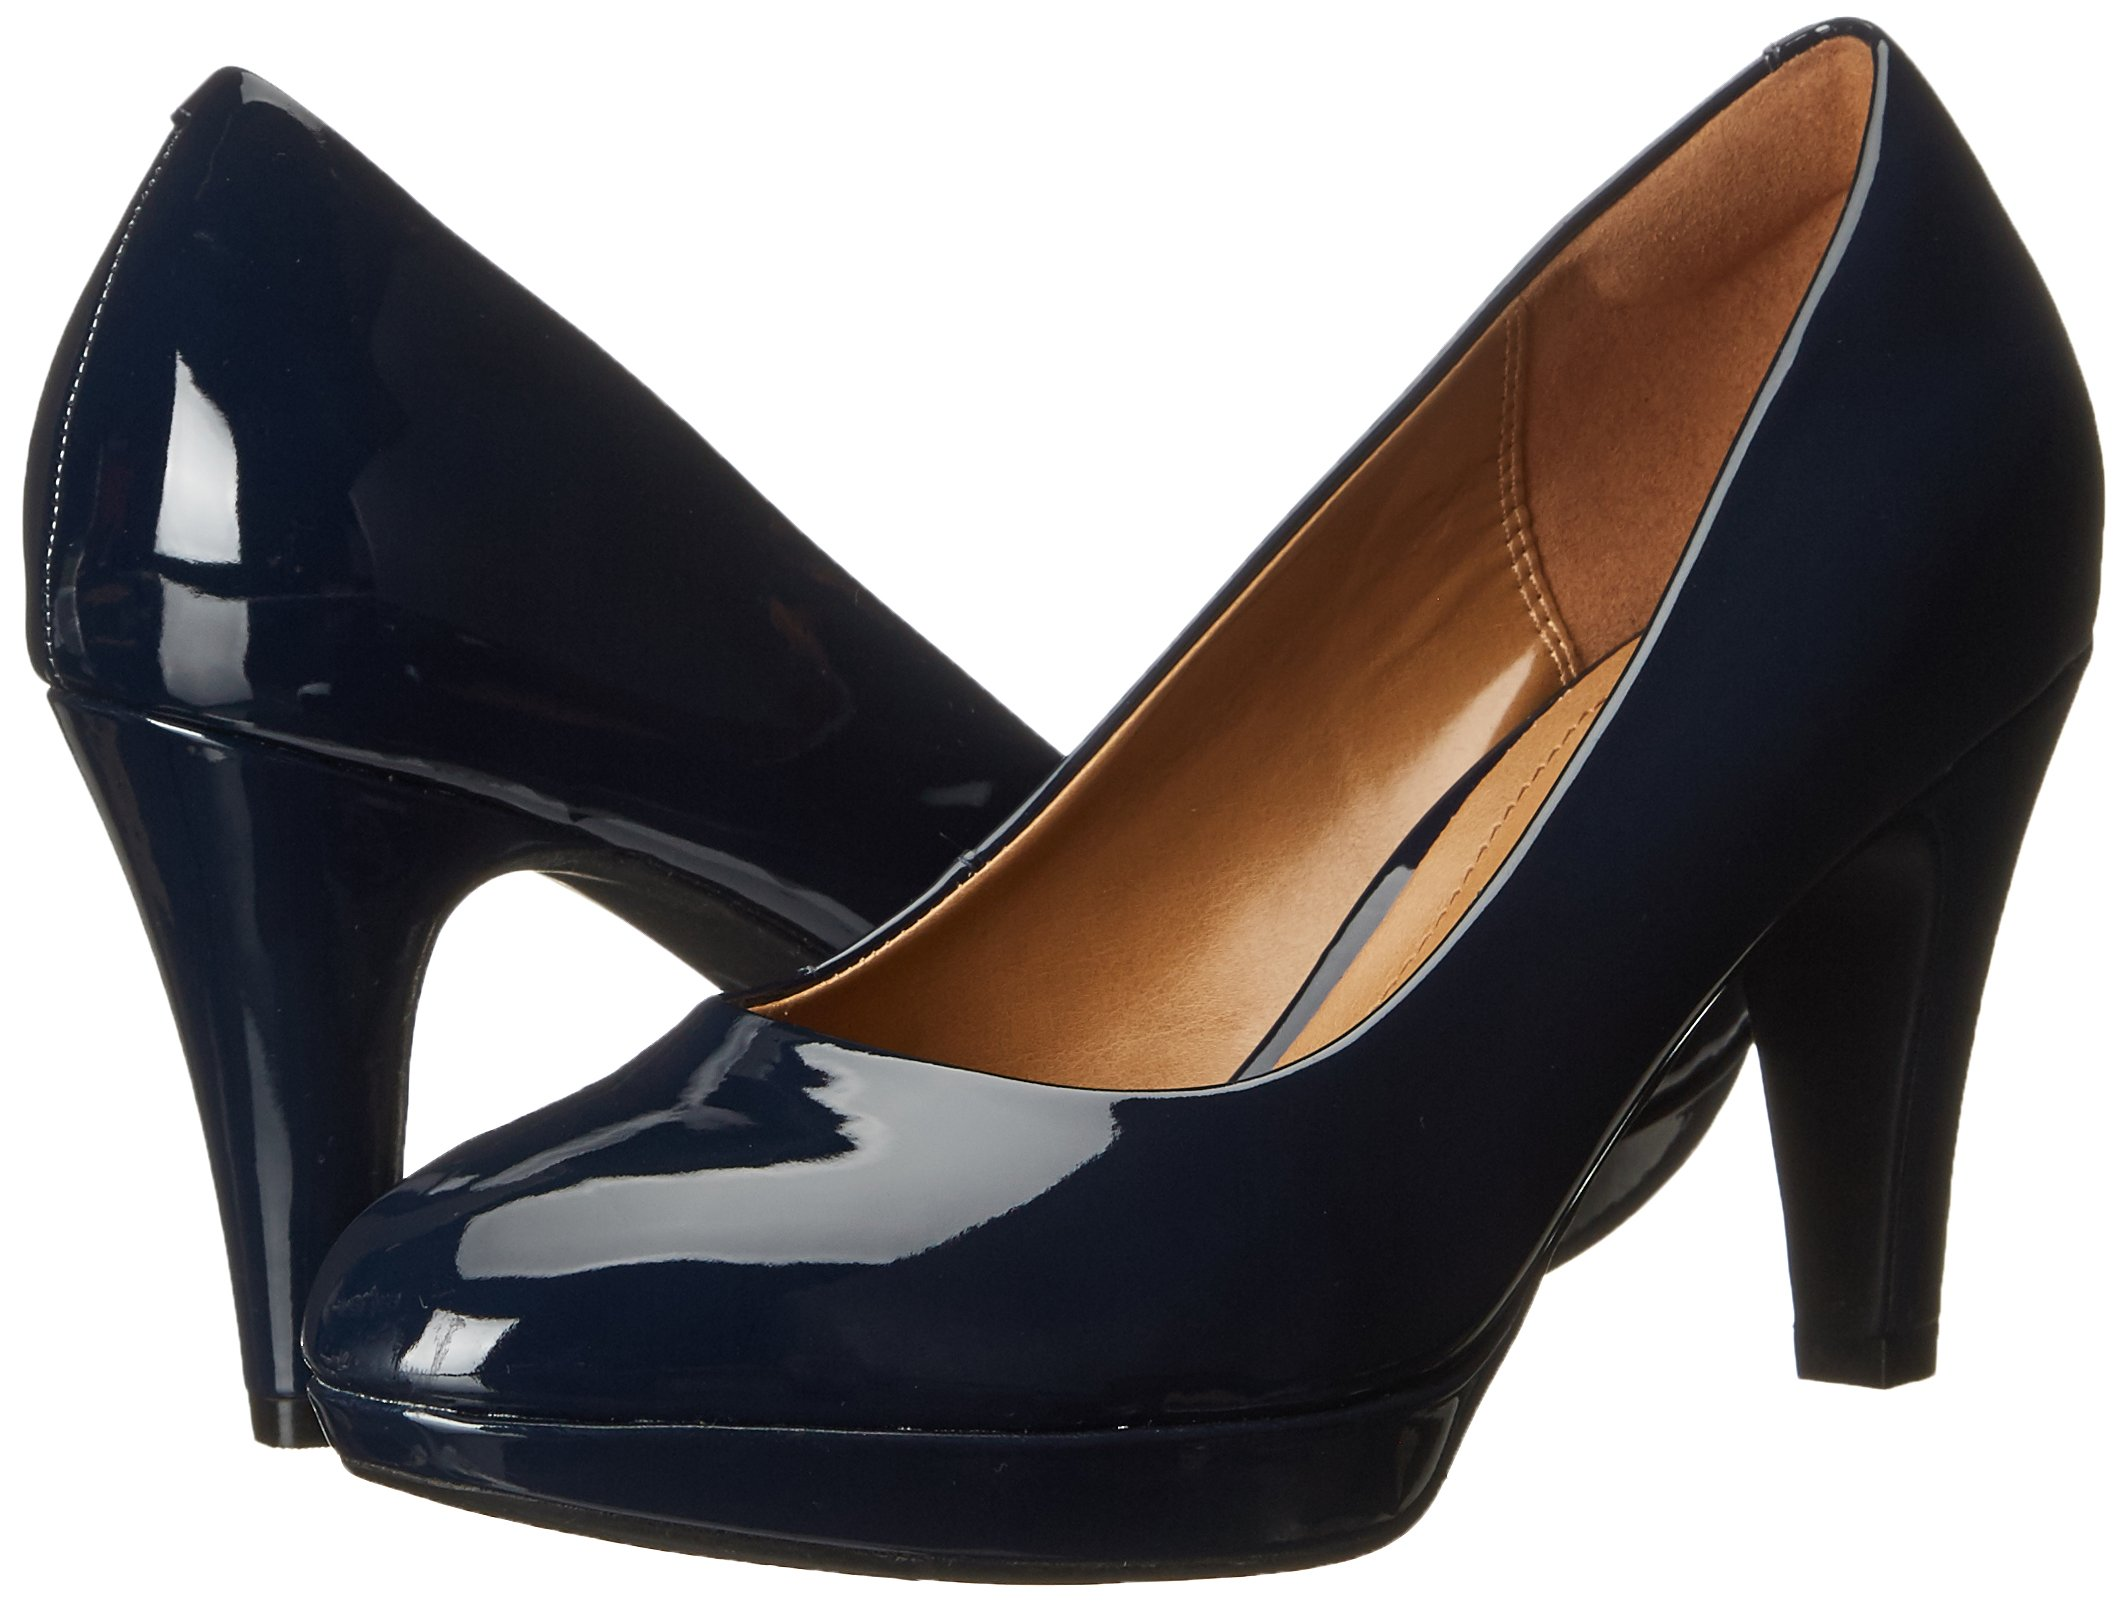 CLARKS Women's Brier Dolly Platform Pump, Navy, 11 W US by CLARKS (Image #6)